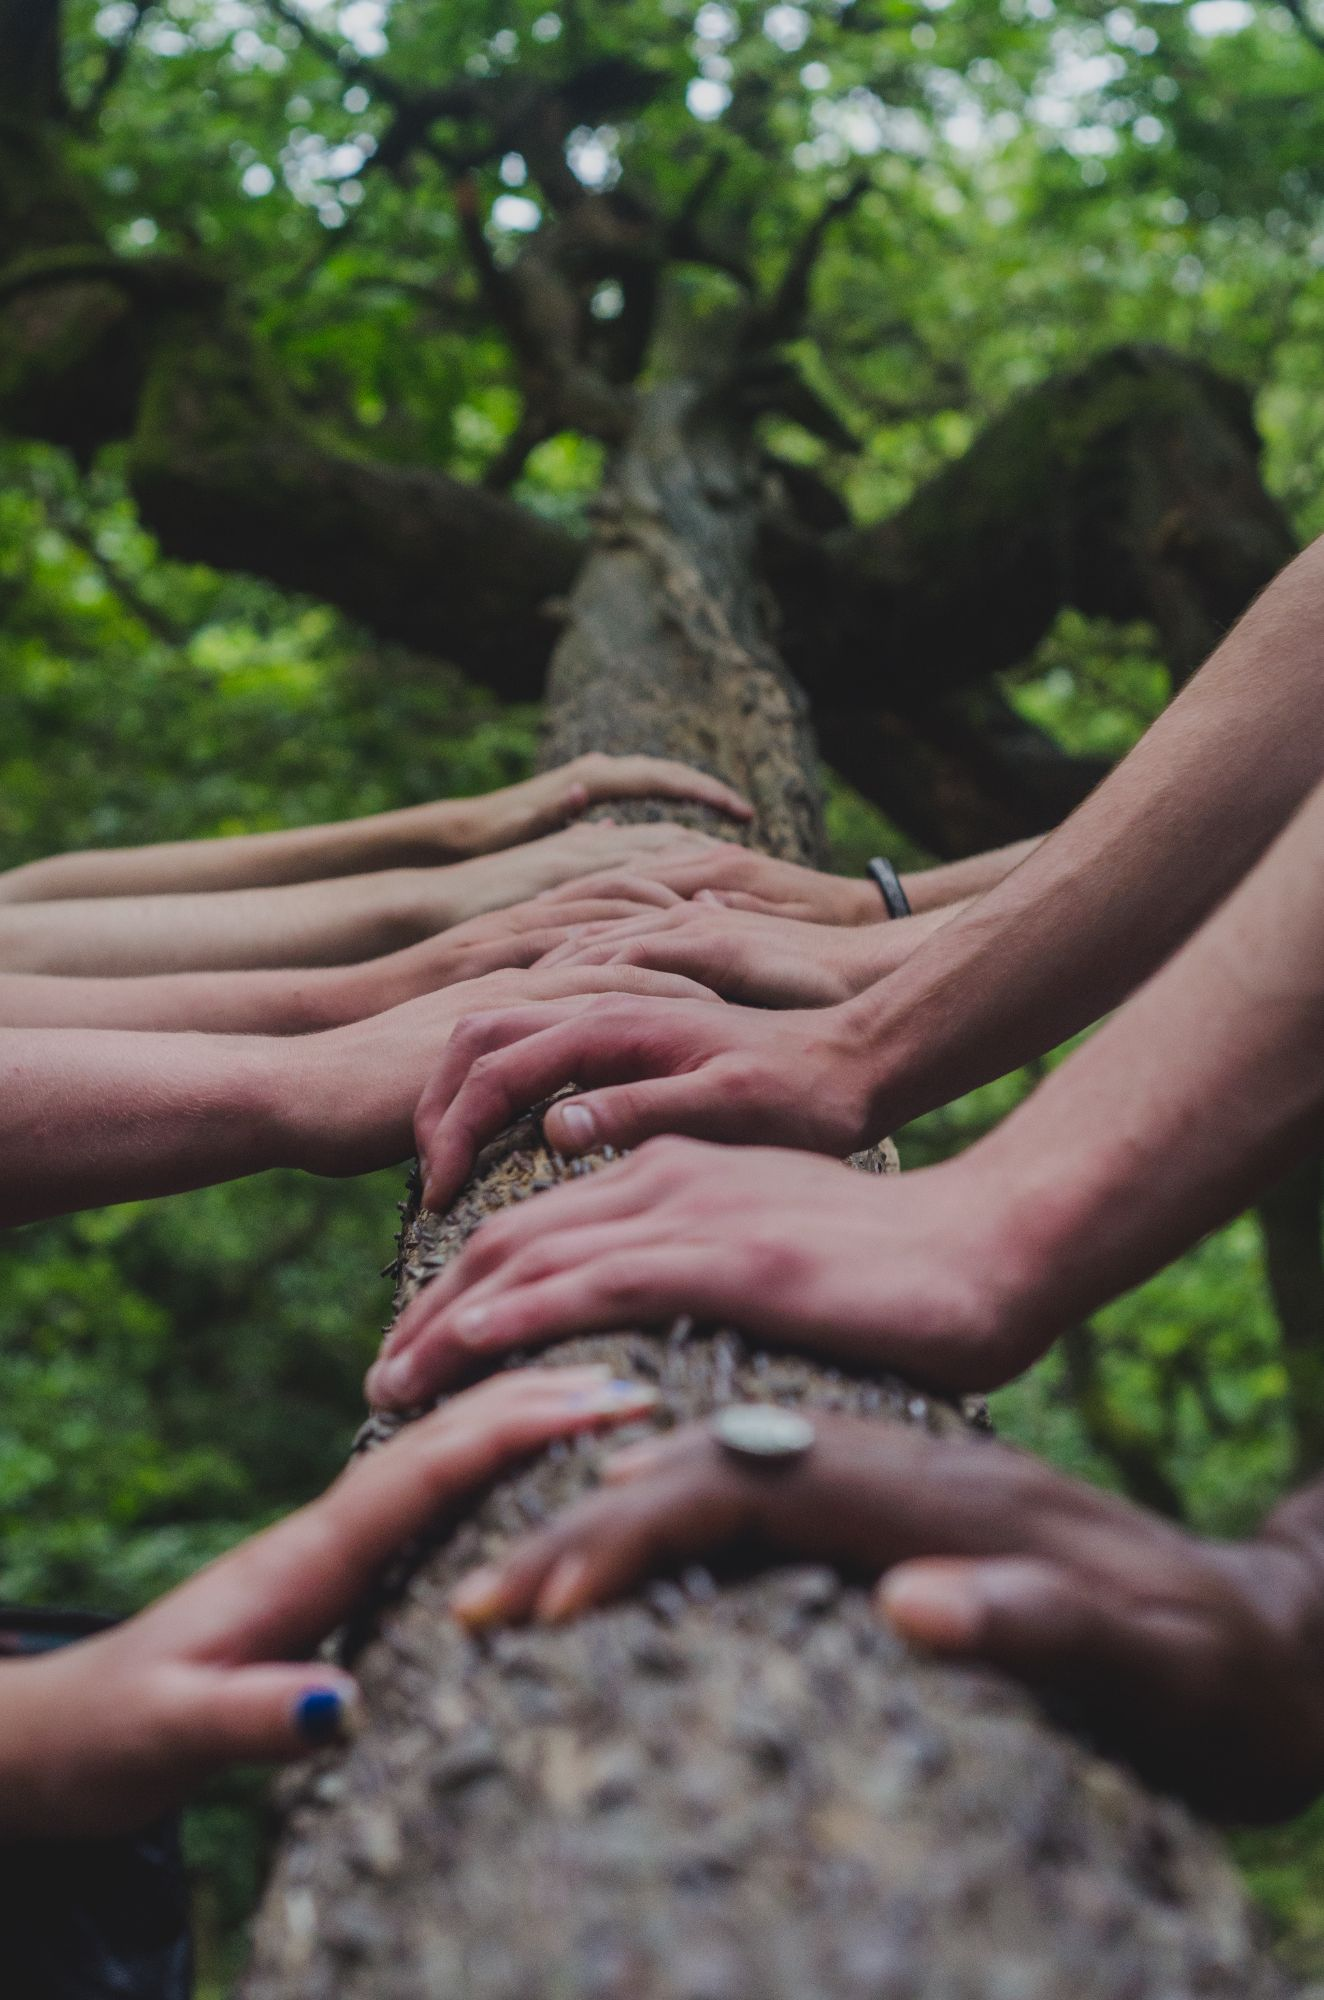 Close up of a tree branch with several people's hands on it